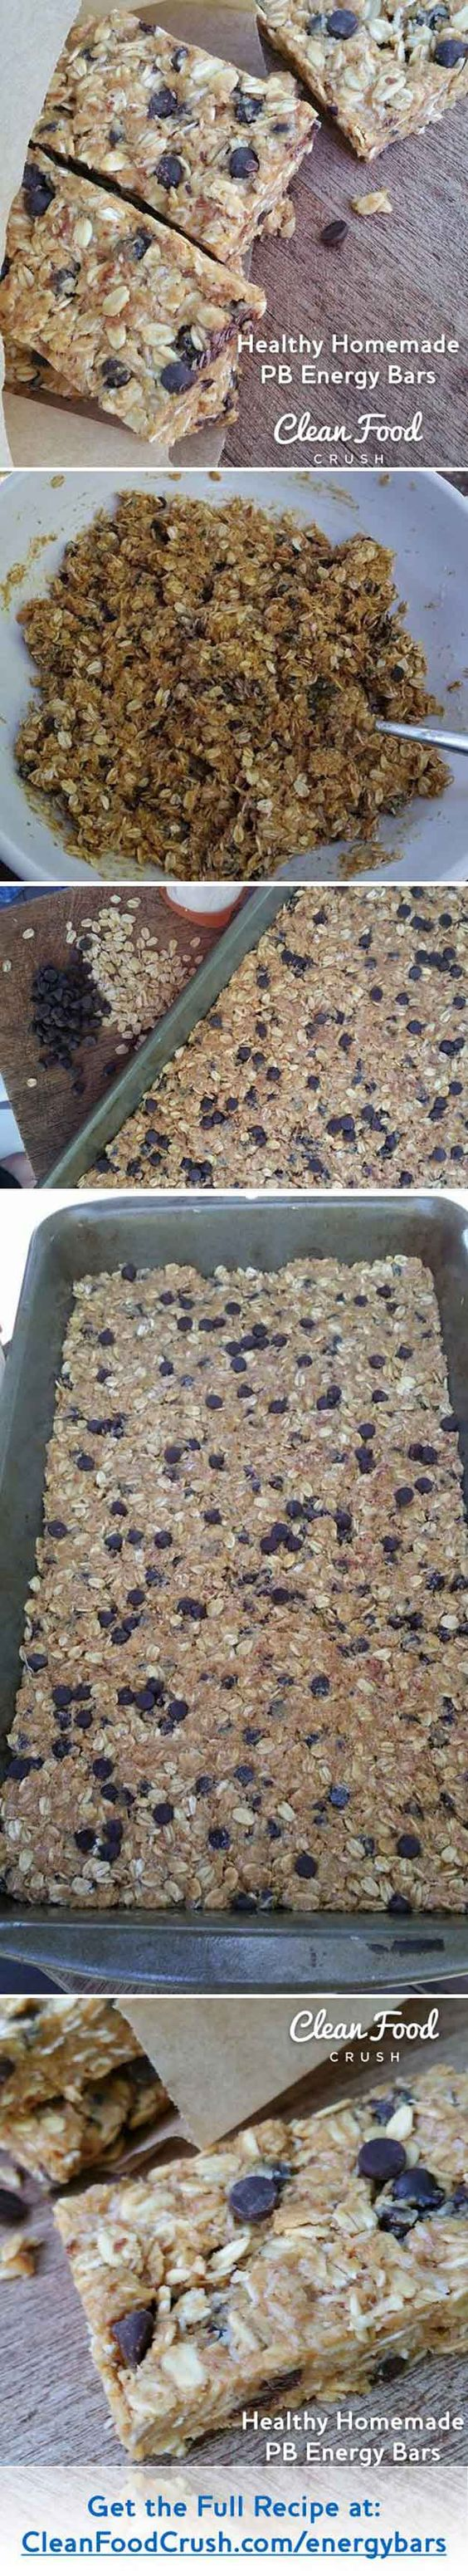 homemade peanut butter and chocolate chip energy bar with oats | 13 Energy Bar Recipes For A Healthy Afternoon Pick Me Up